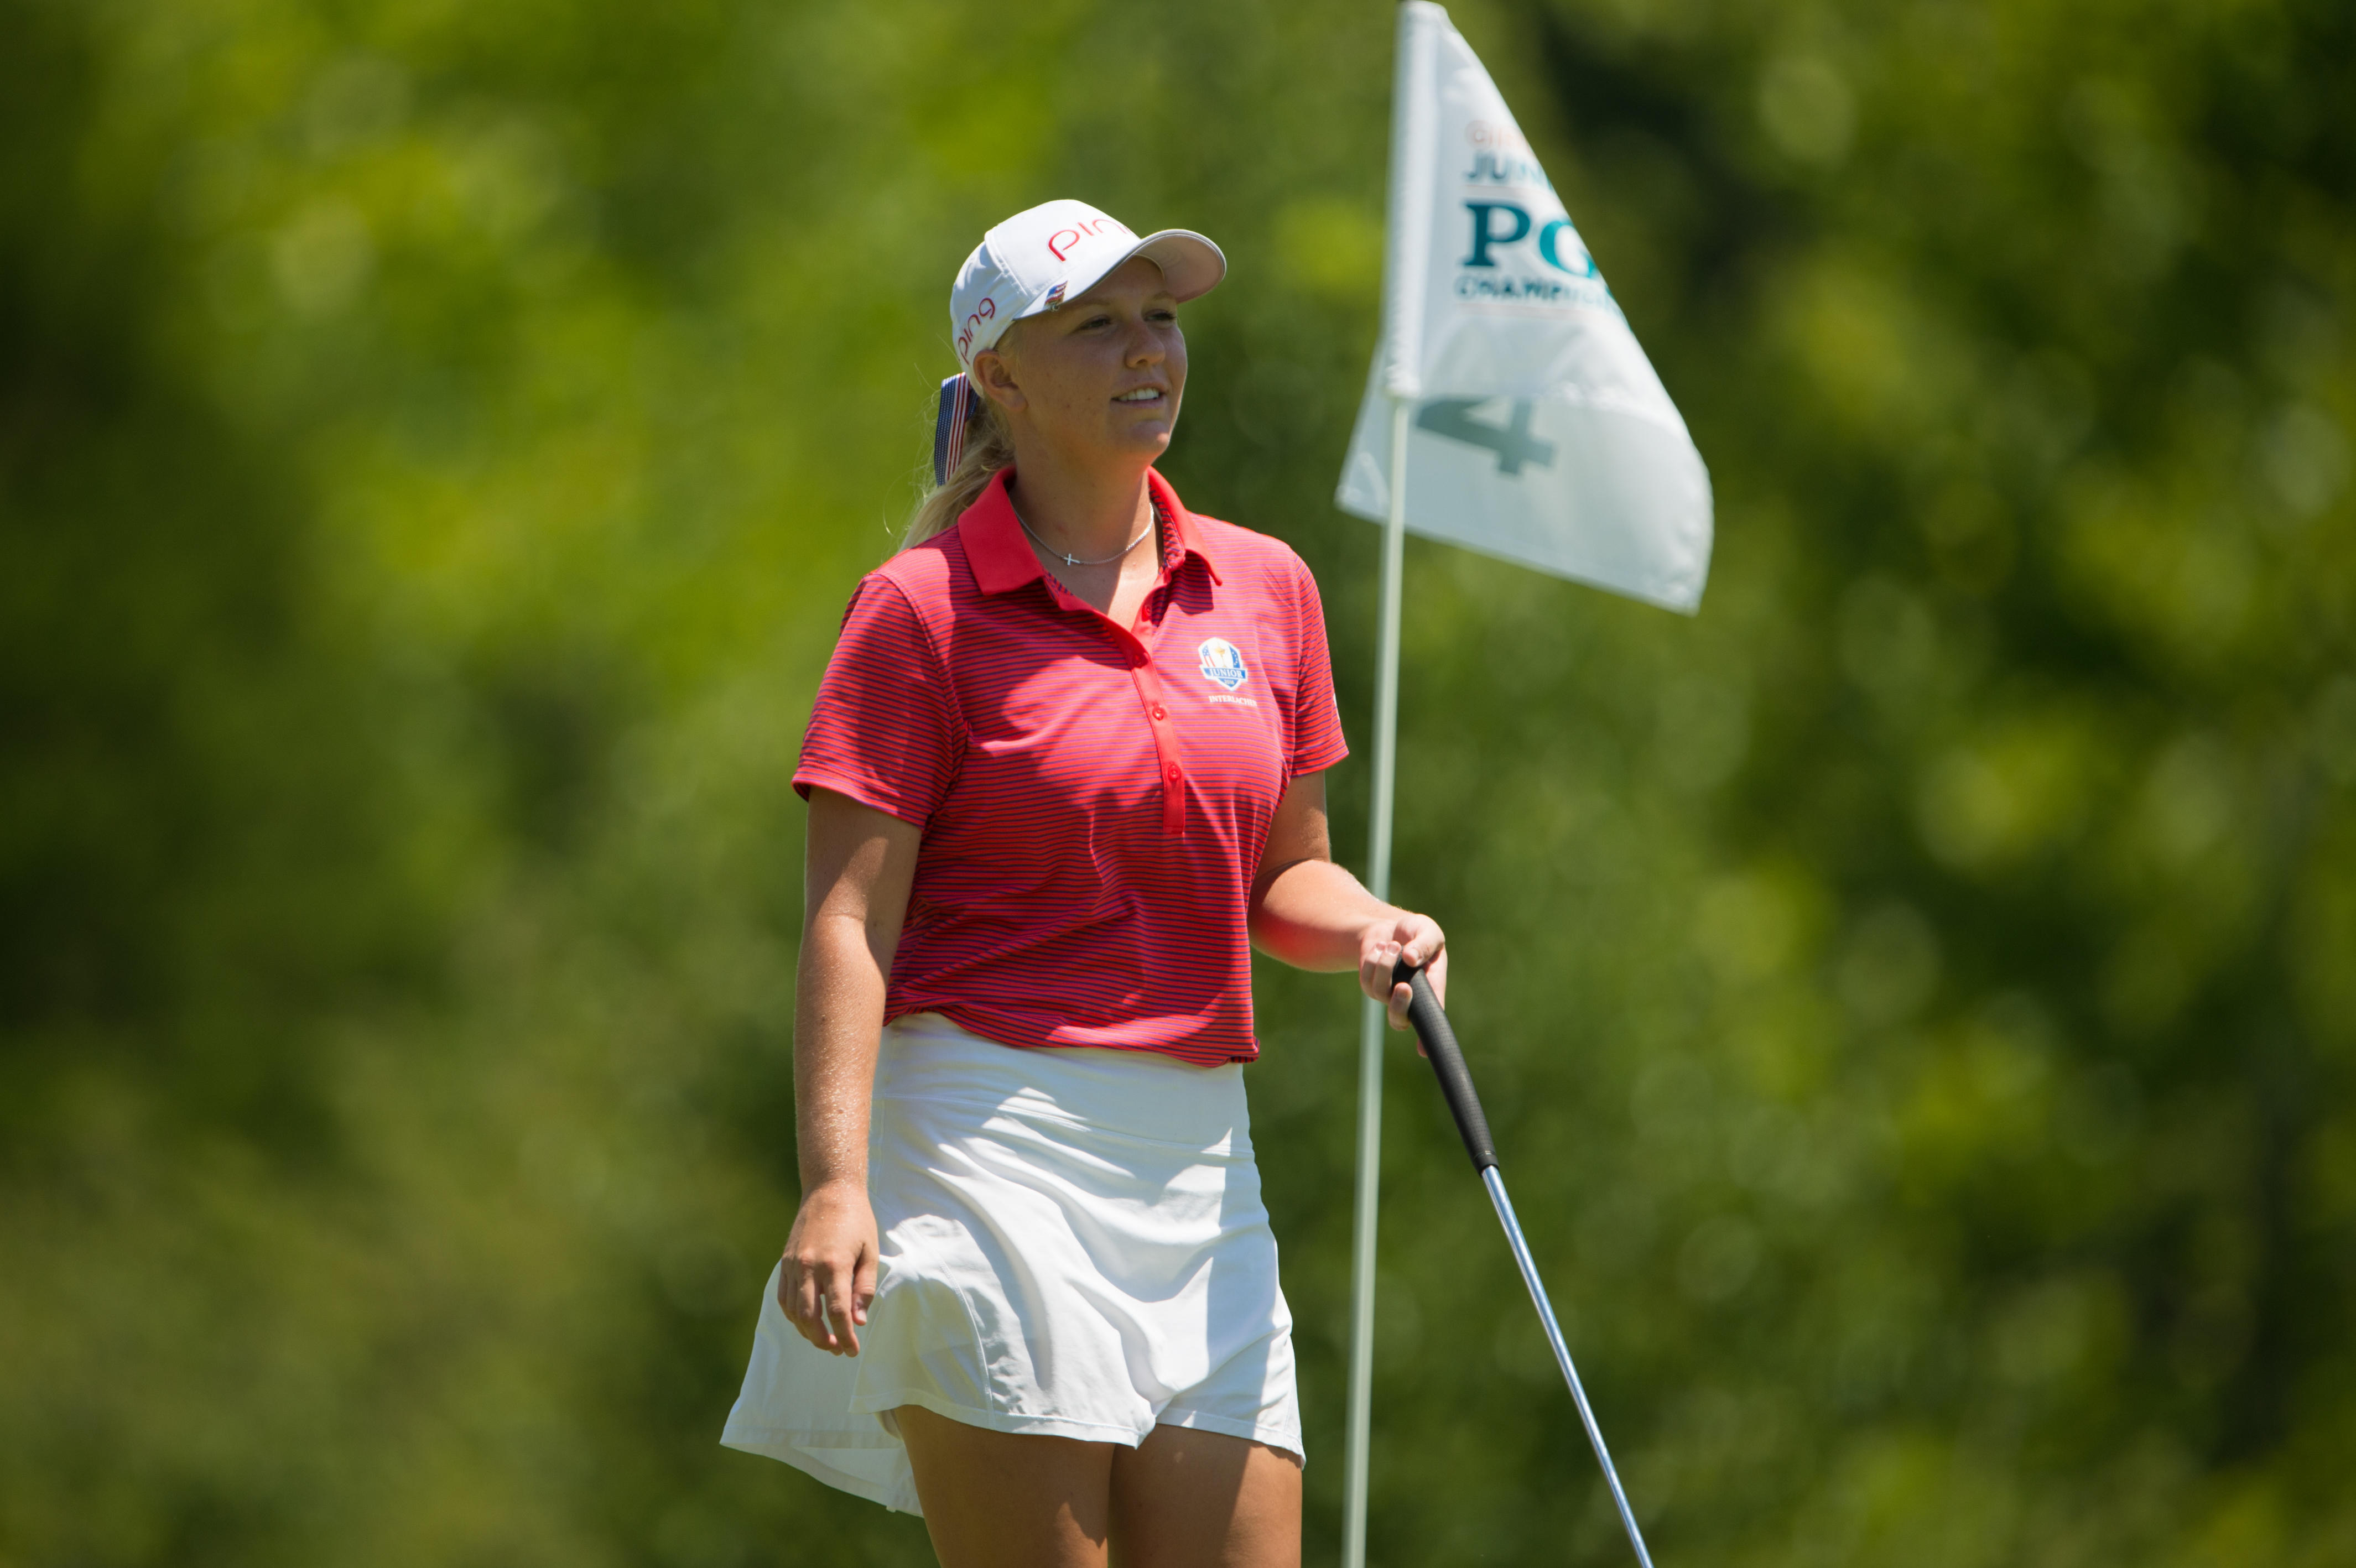 Record-Tying Round for Hailee Cooper Places Her Atop the Leaderboard at 42nd Girls Junior PGA Championship